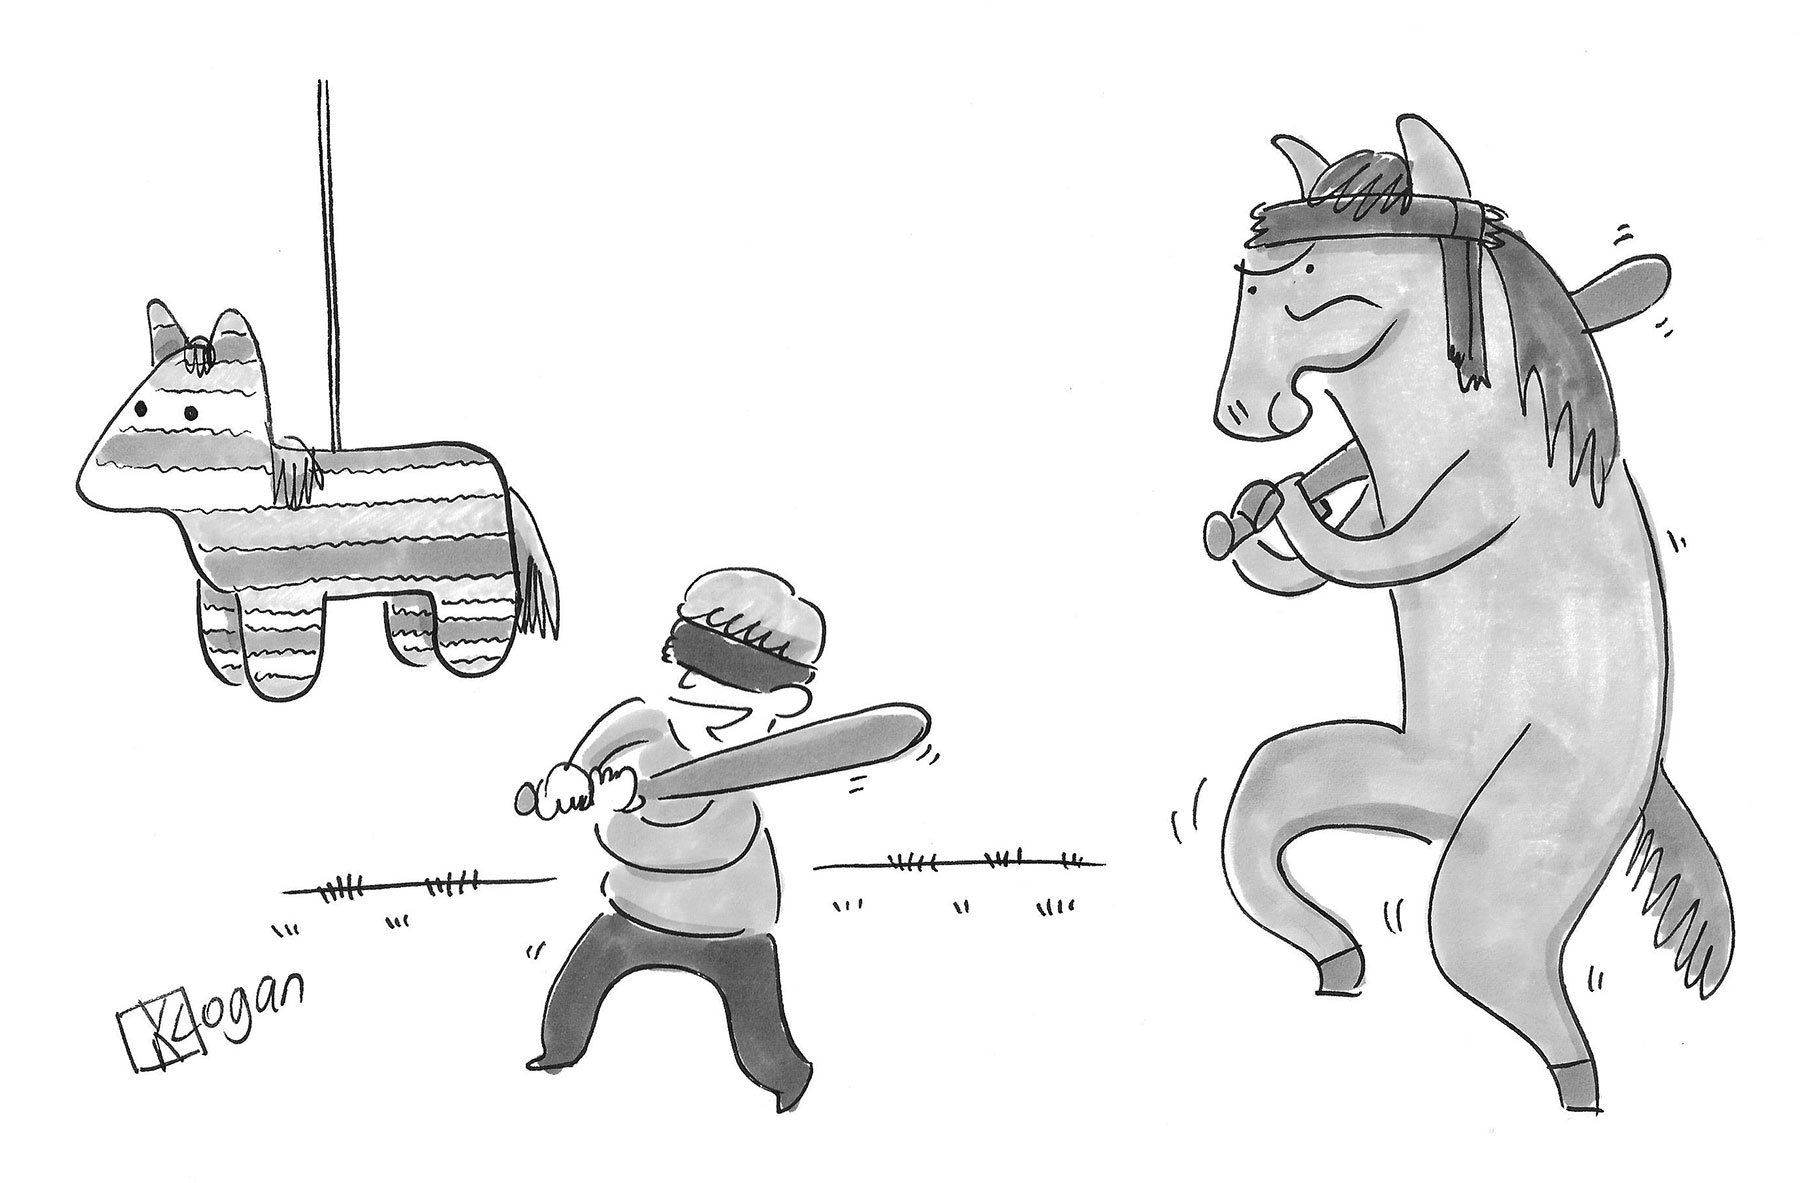 (A horse is sneaking up on a kid swinging at a pinata.)